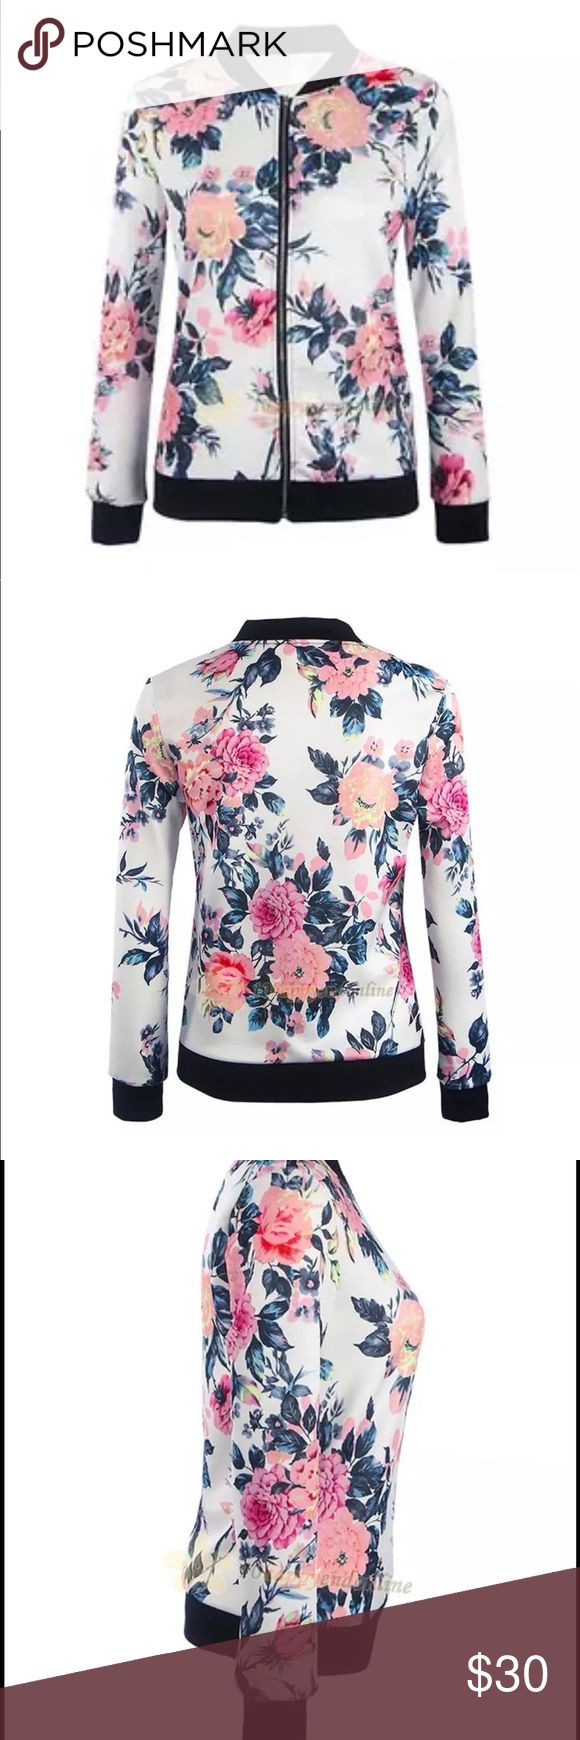 FLORAL BOMBER Trendy floral bomber jacket! Lightweight for wear to those nighttime concerts or festivals!! Just enough warmth and so pretty!! Jackets & Coats